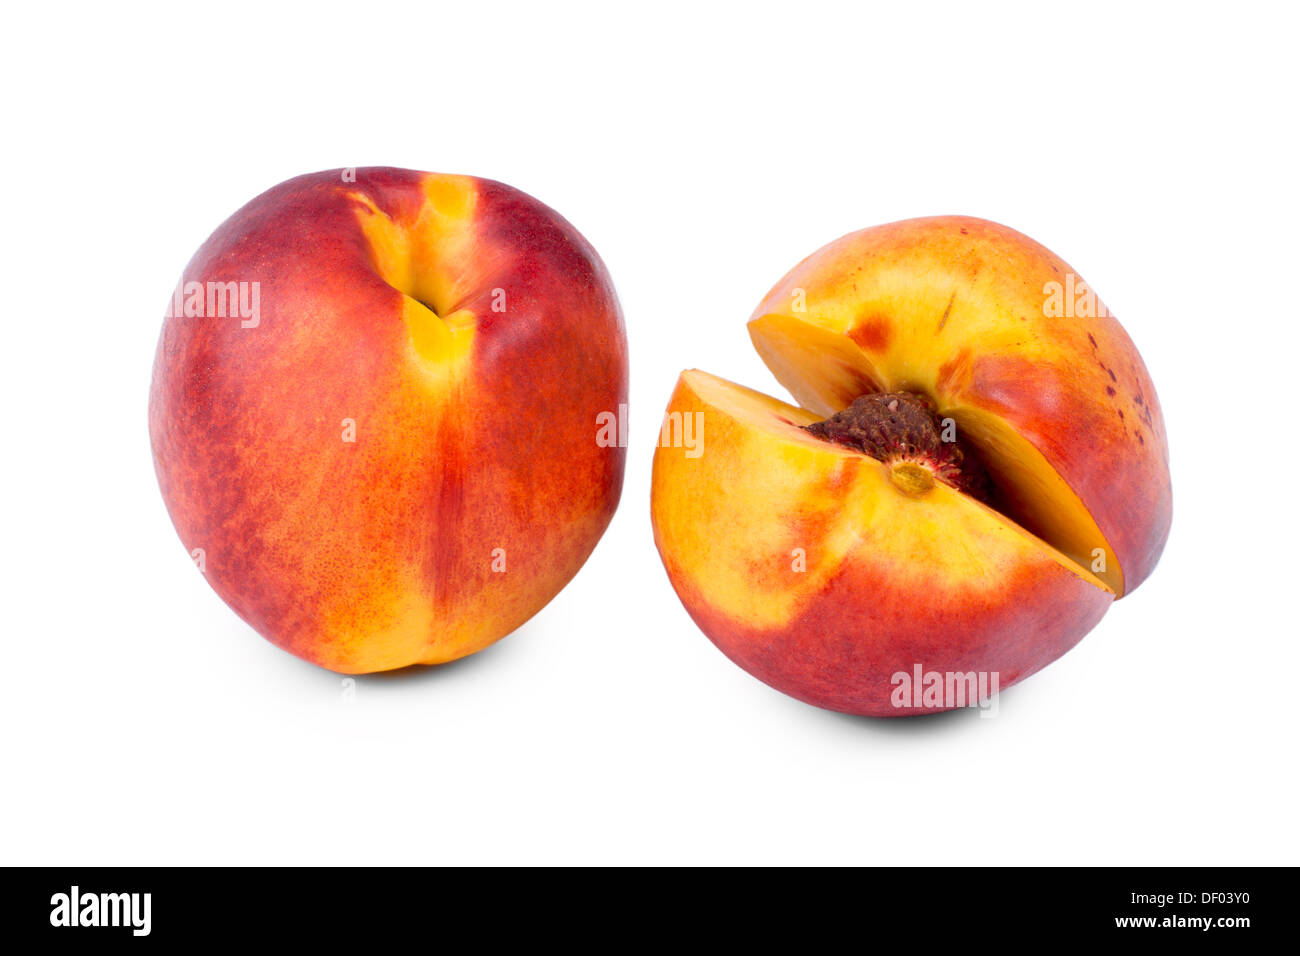 Whole and sliced nectarine opened to just reveal the pip inside standing side by side on a white background Stock Photo